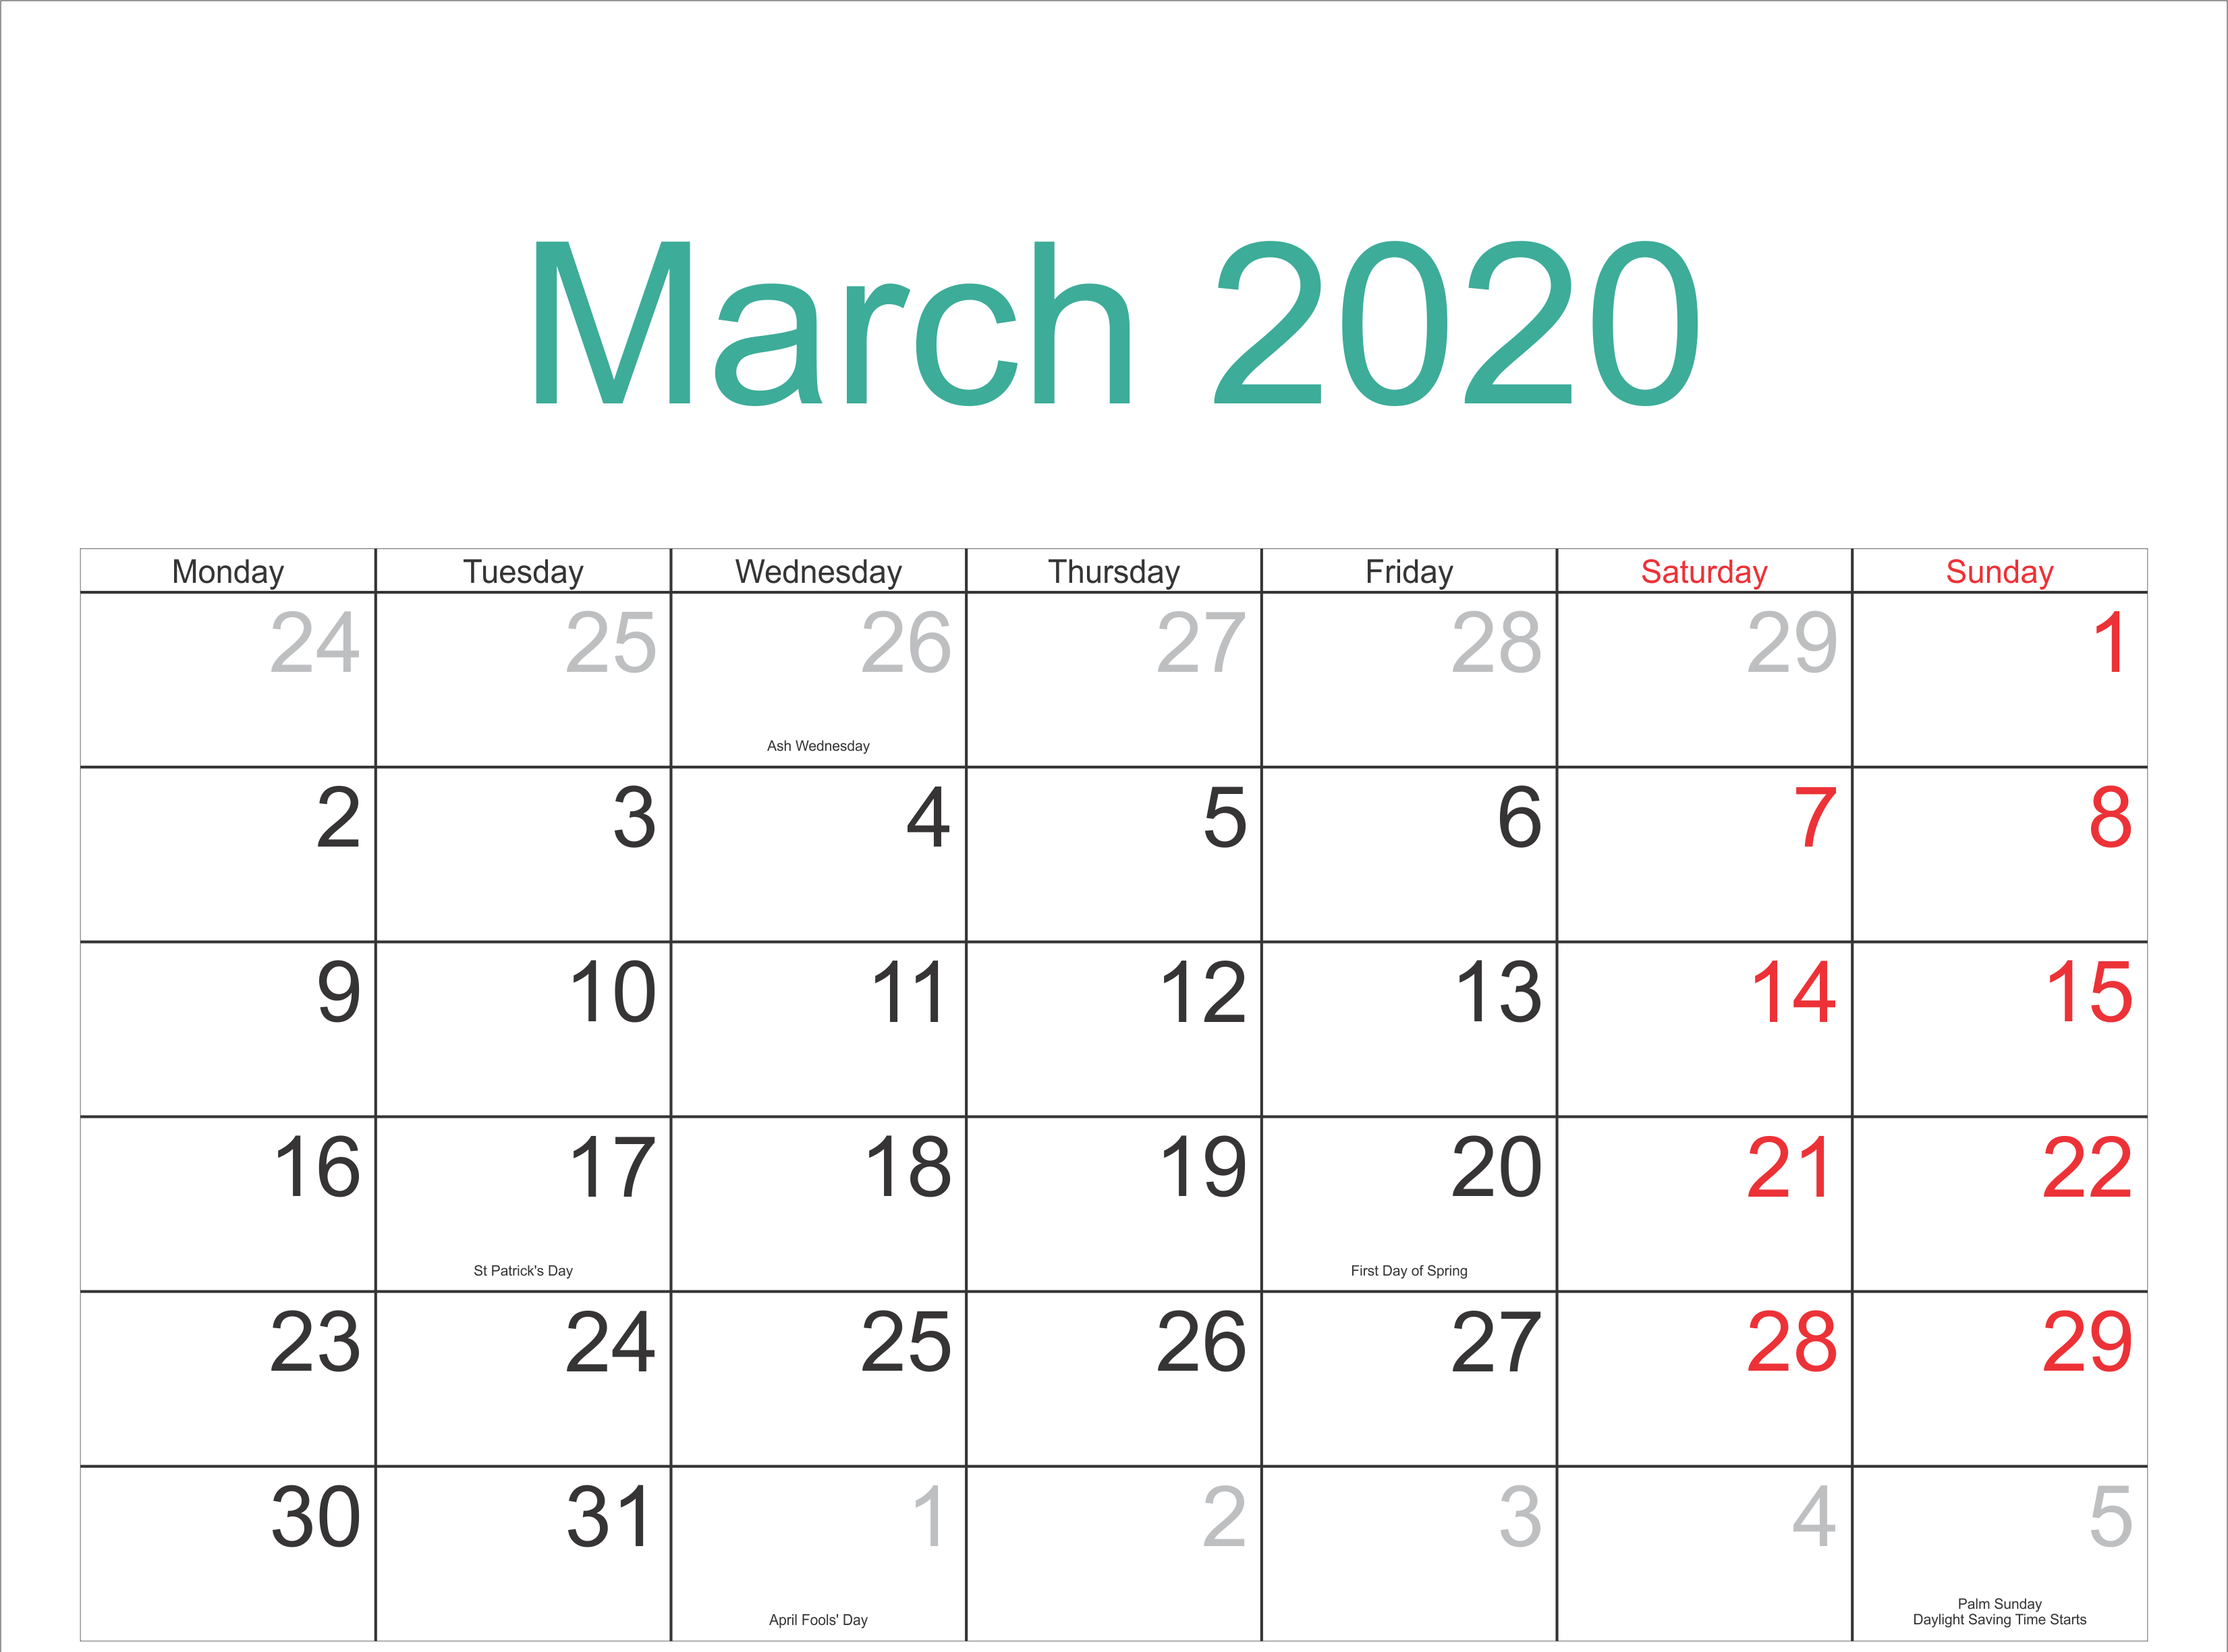 March 2020 Calendar Printable With Holidays | Free Printable